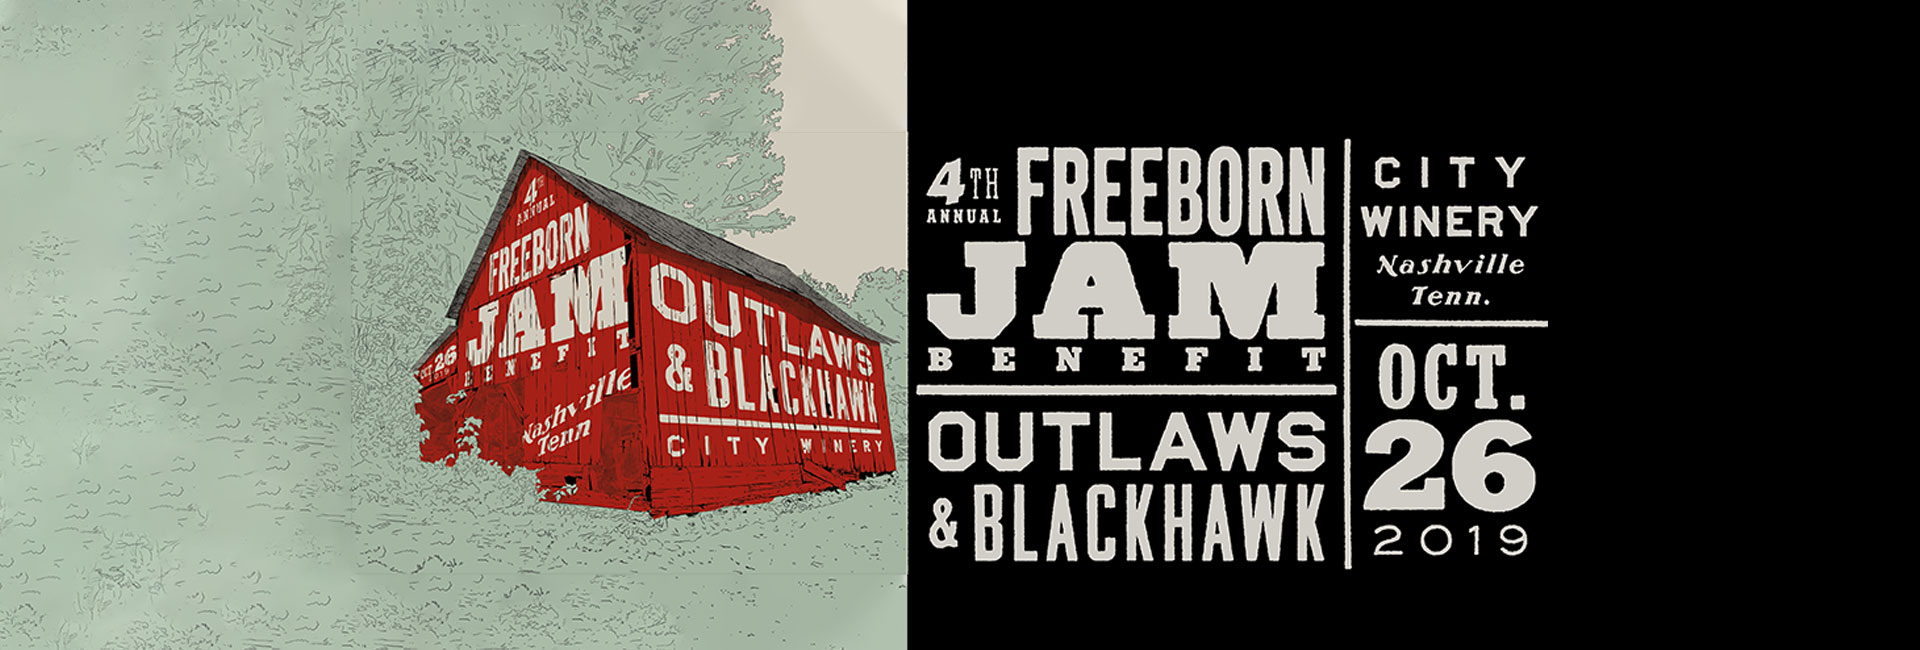 freeborn_2019_outlaws_banner_default.jpg